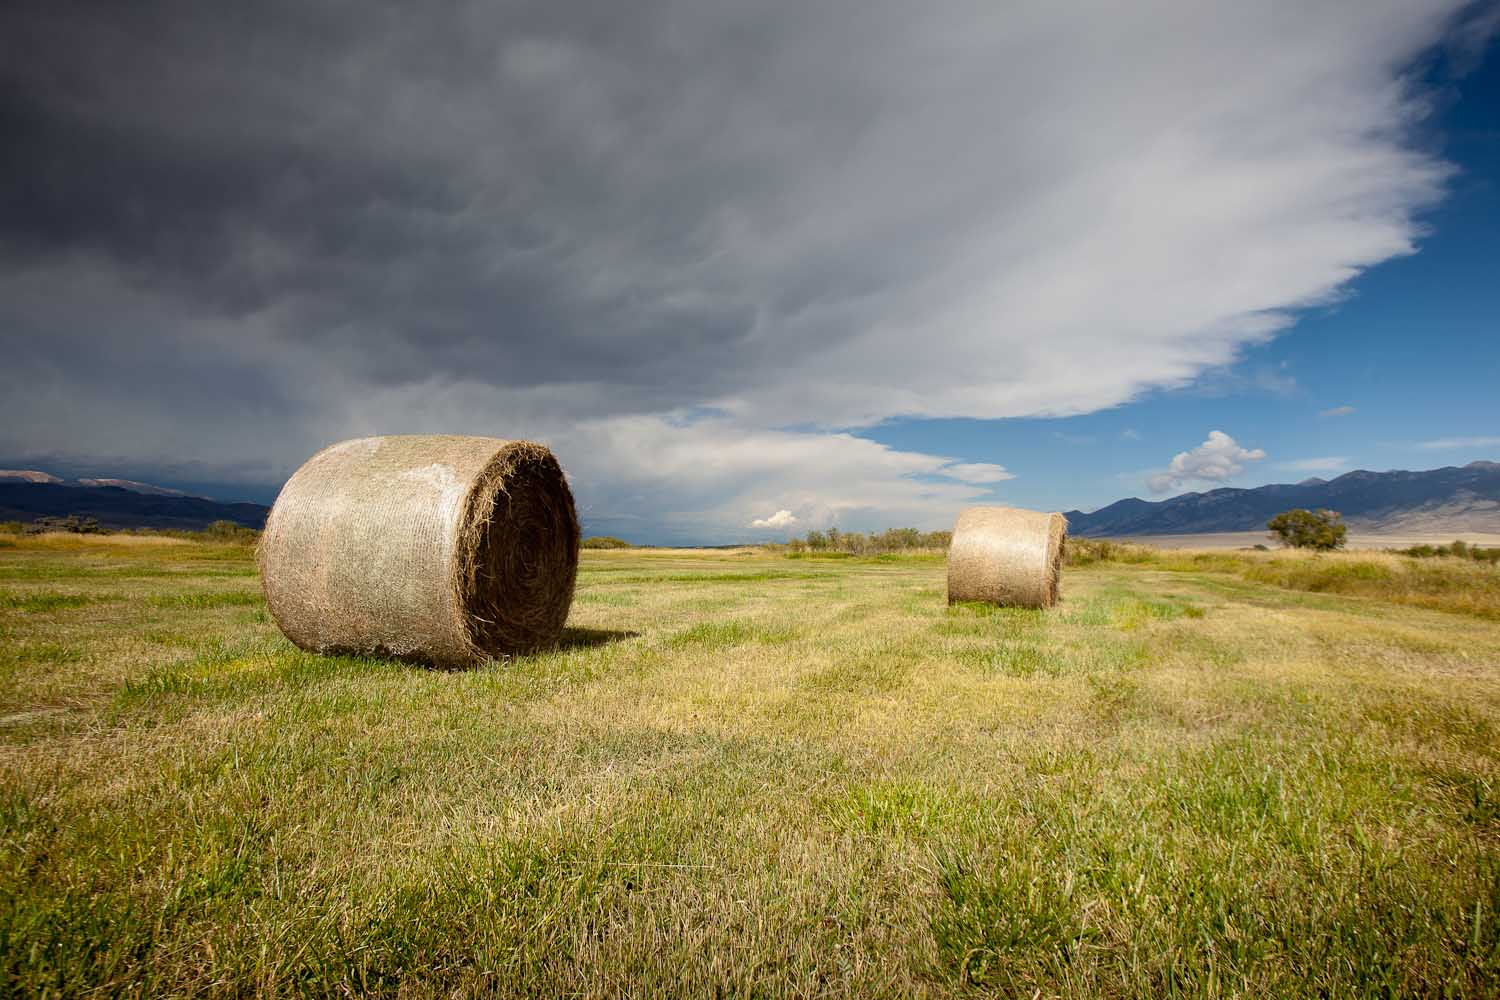 The Big Hole Valley in South West Montana, has some of the finest native pasture and open spaces left in the west.